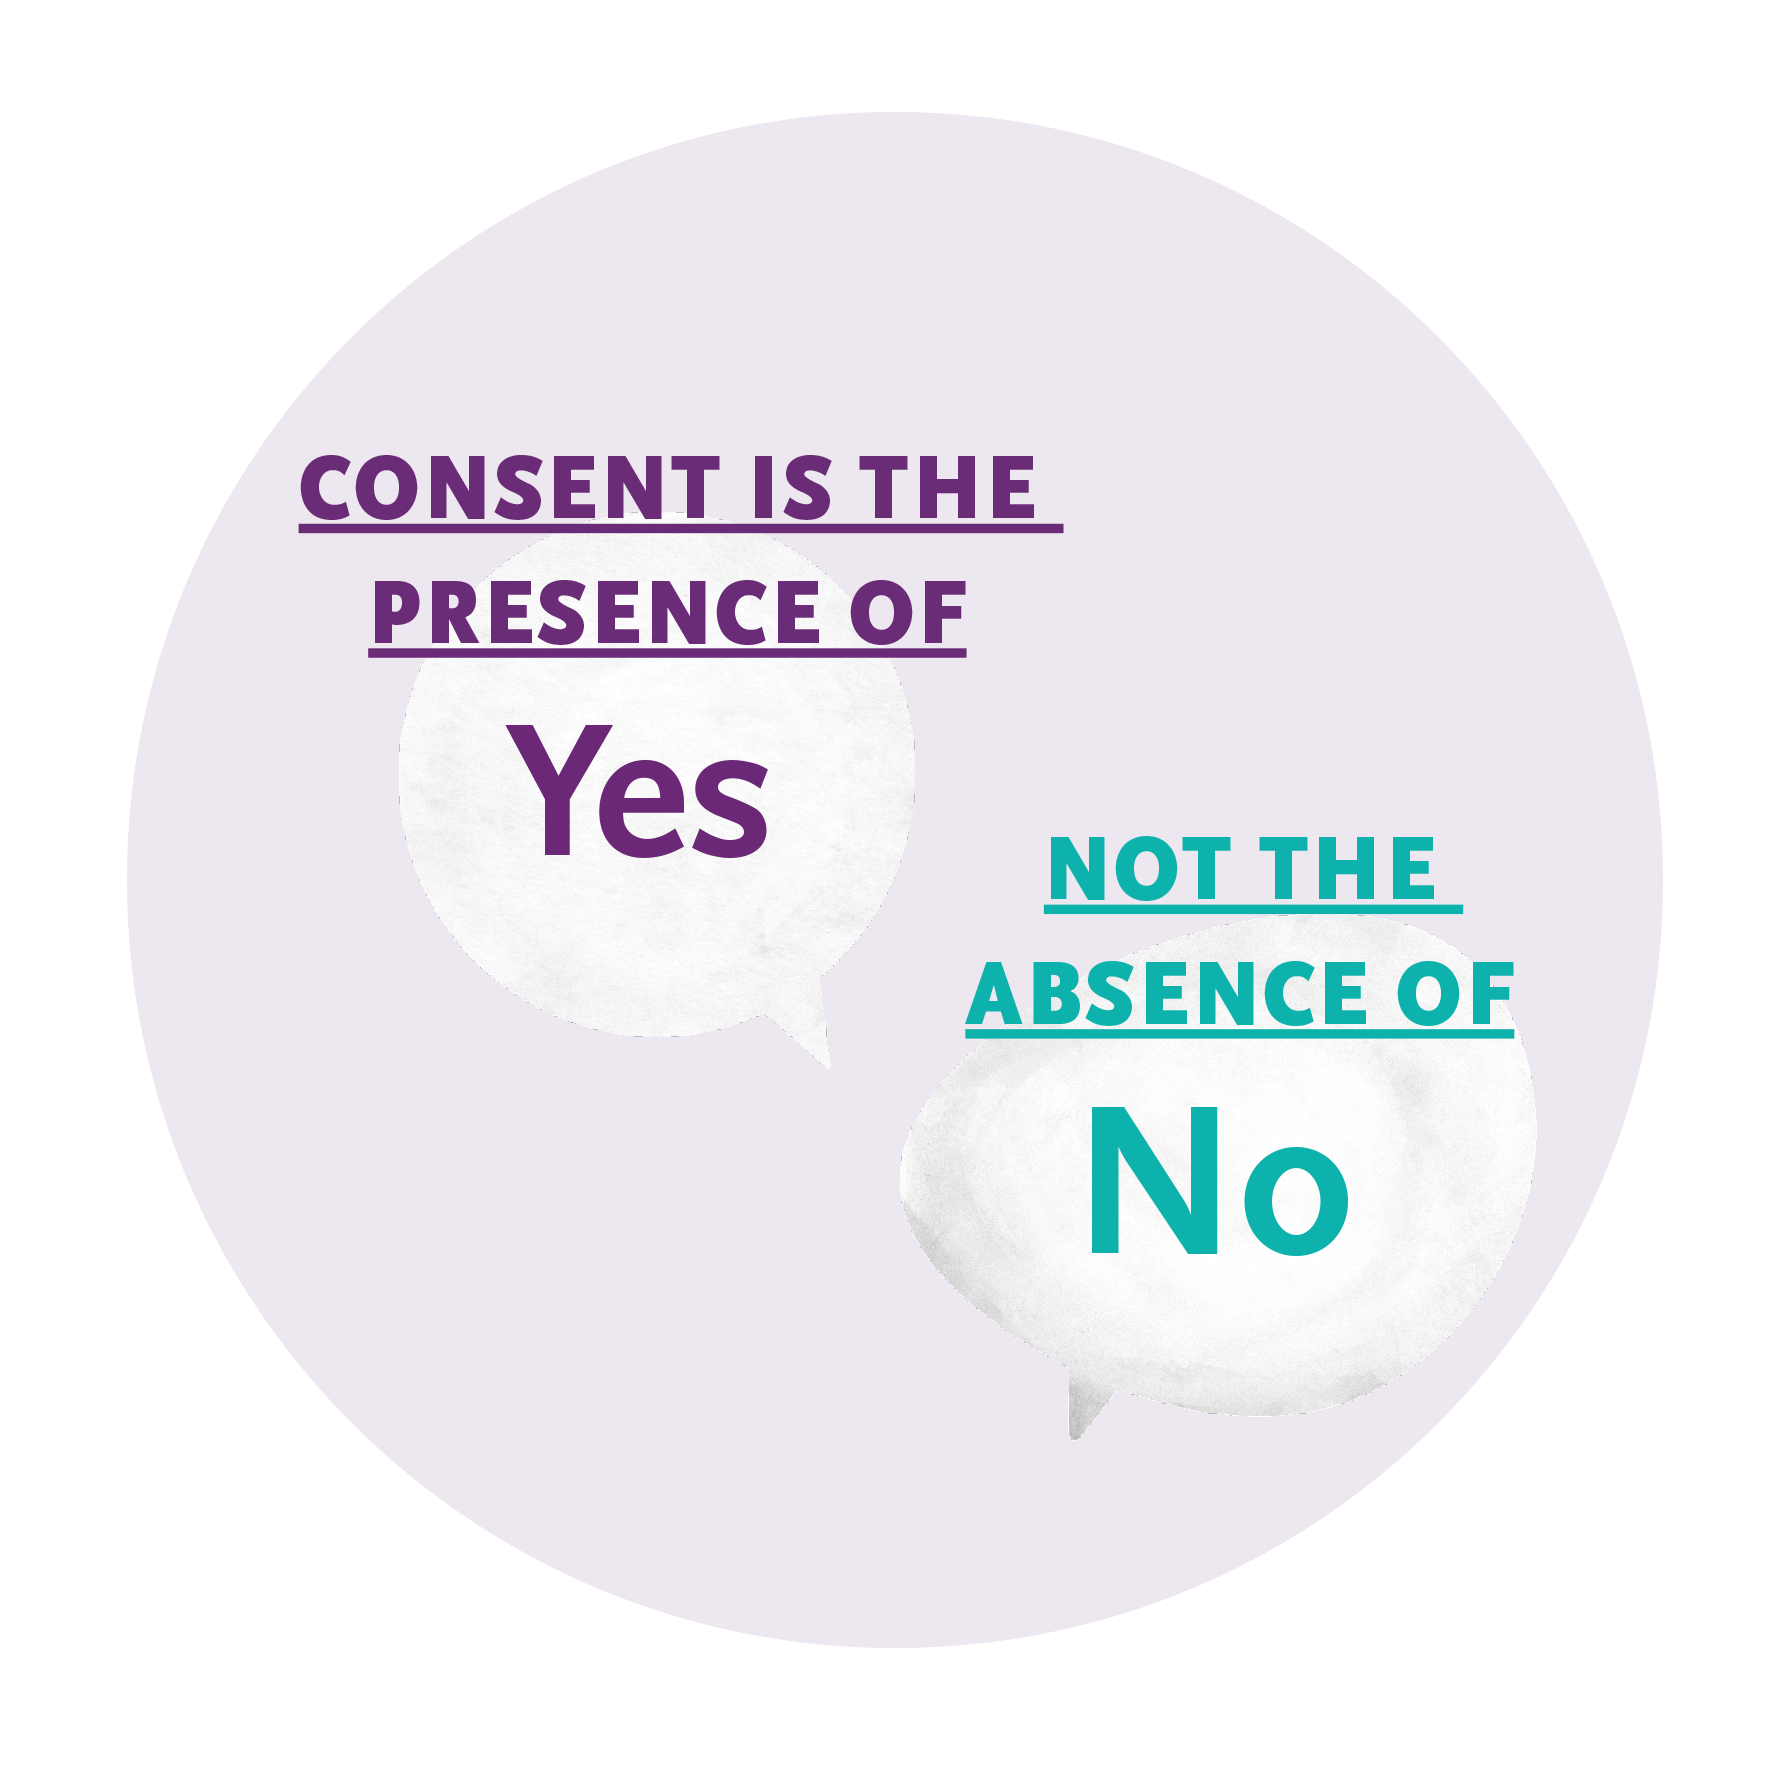 Consent is the presence of yes, not the absence of no